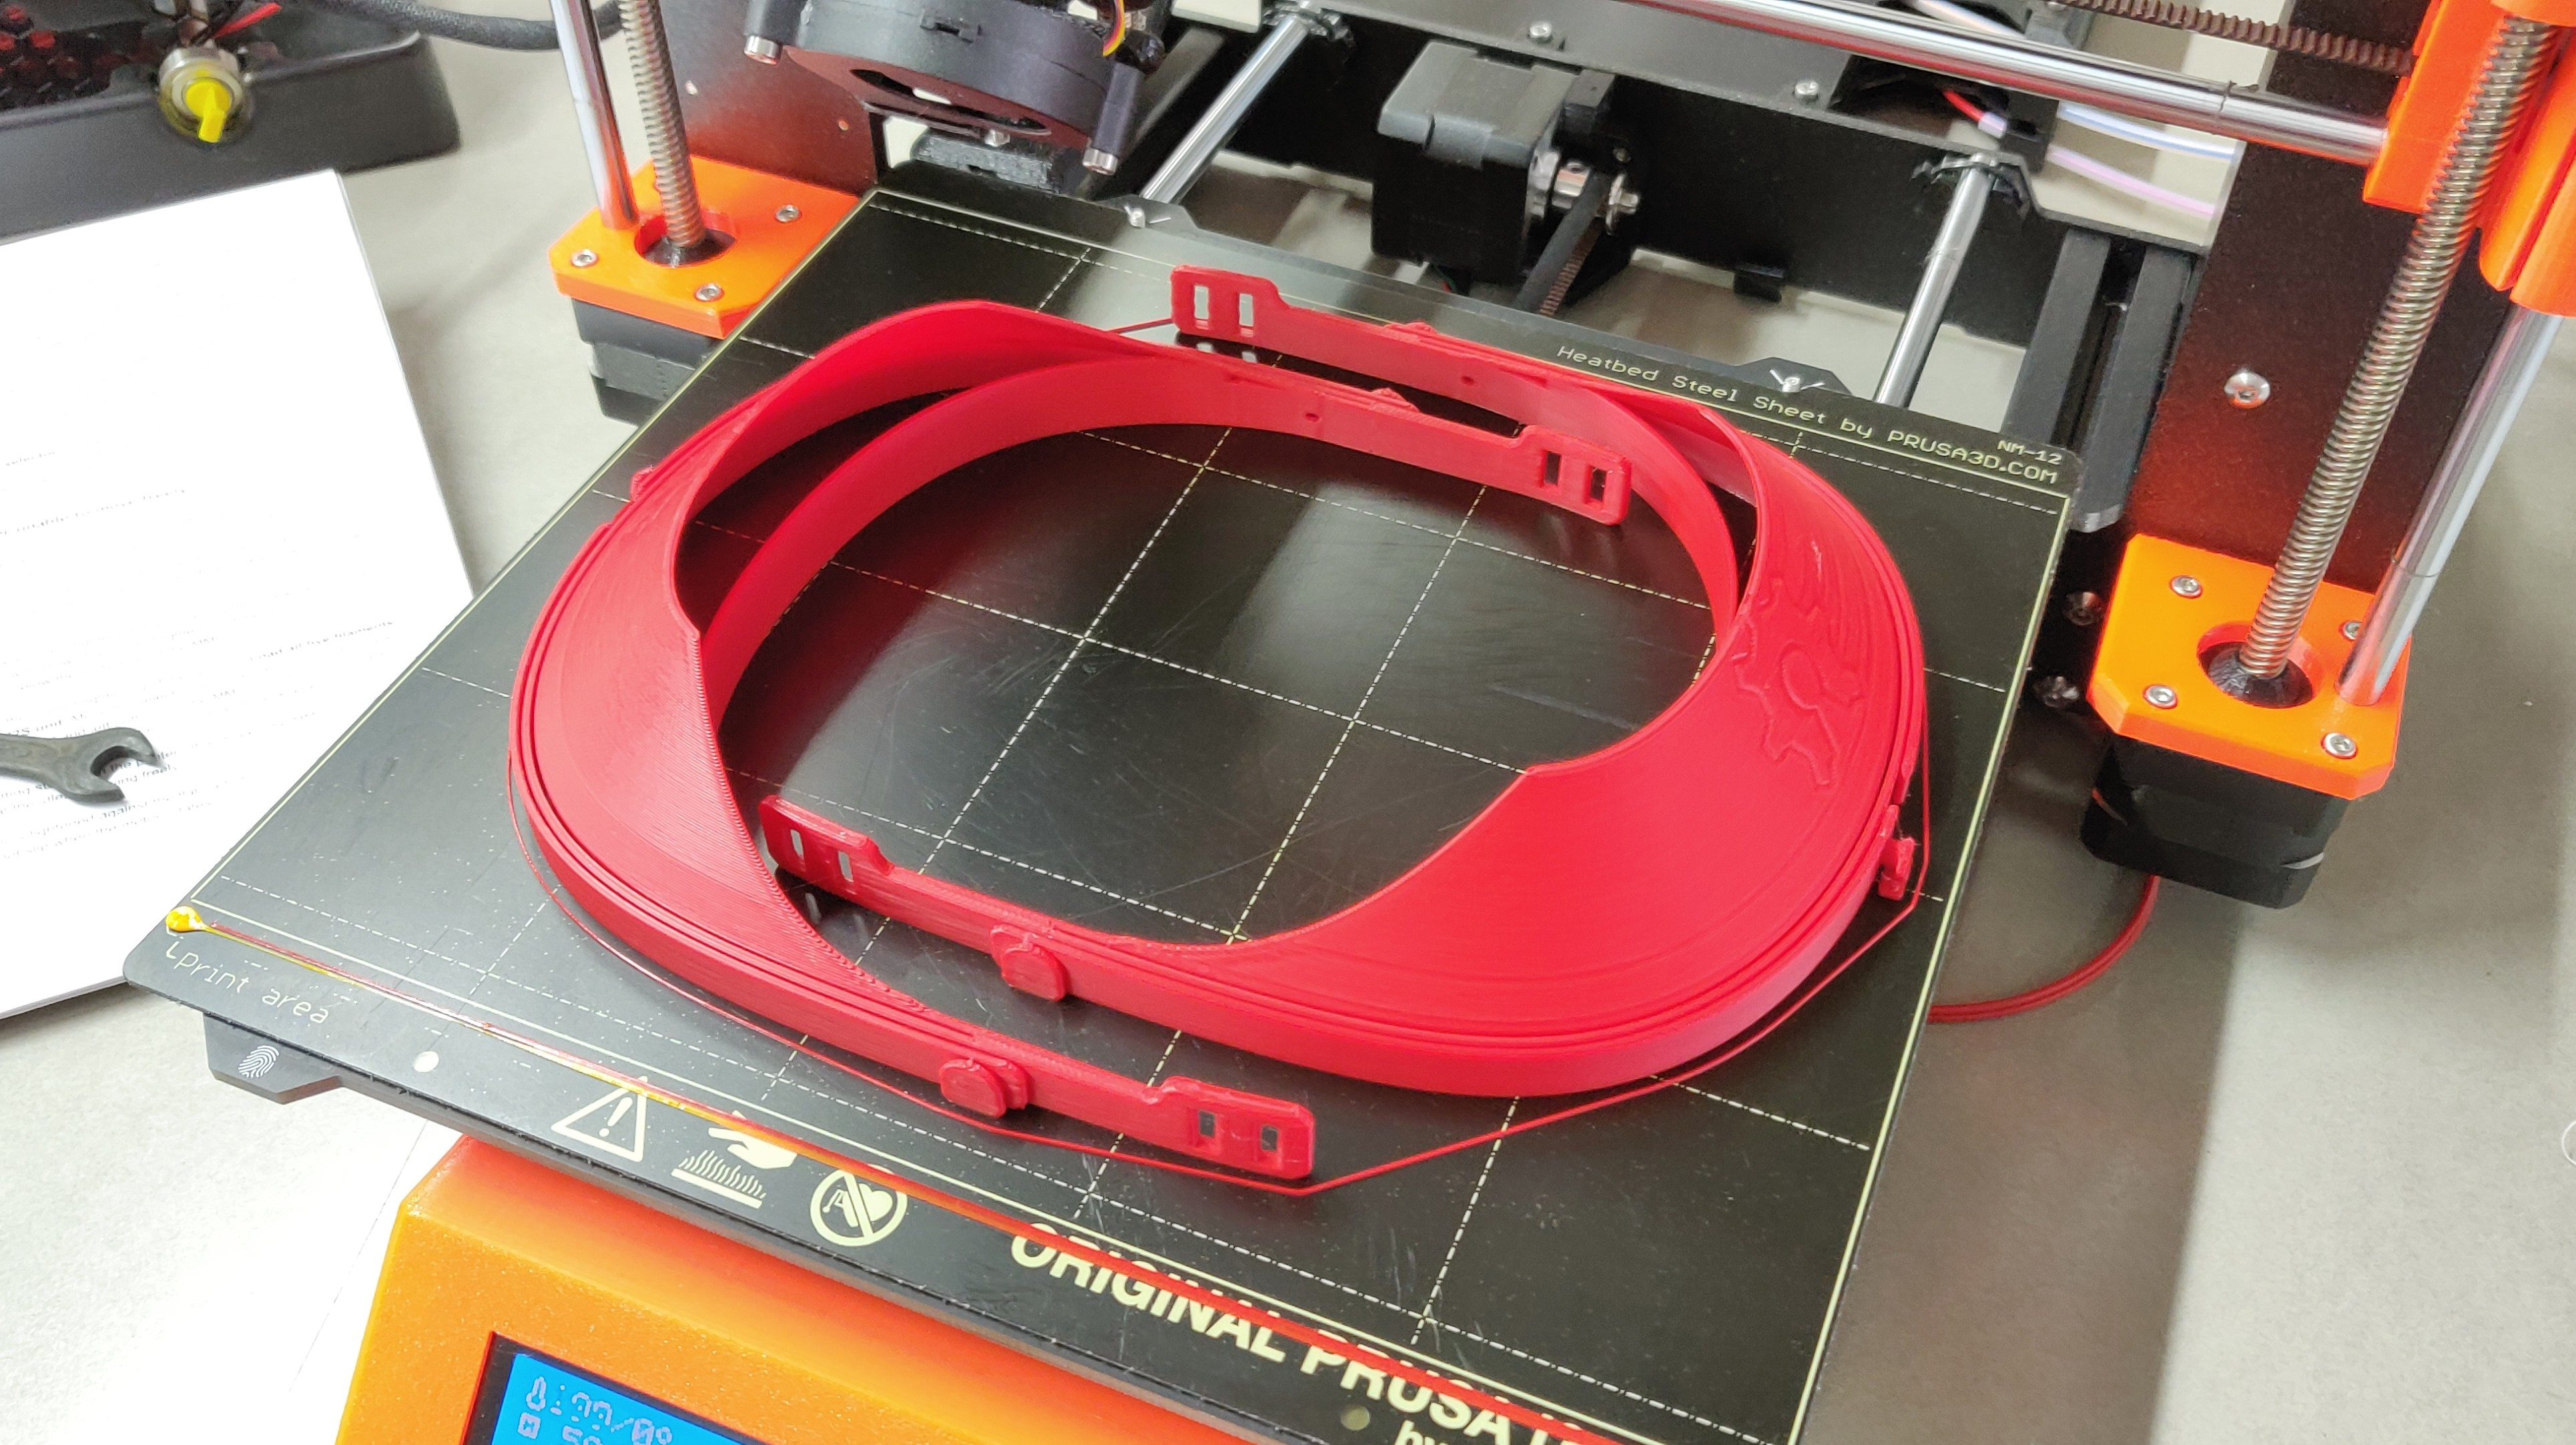 BAC Valves collaborates with the citzen network by making protection screens with the 3D printer.